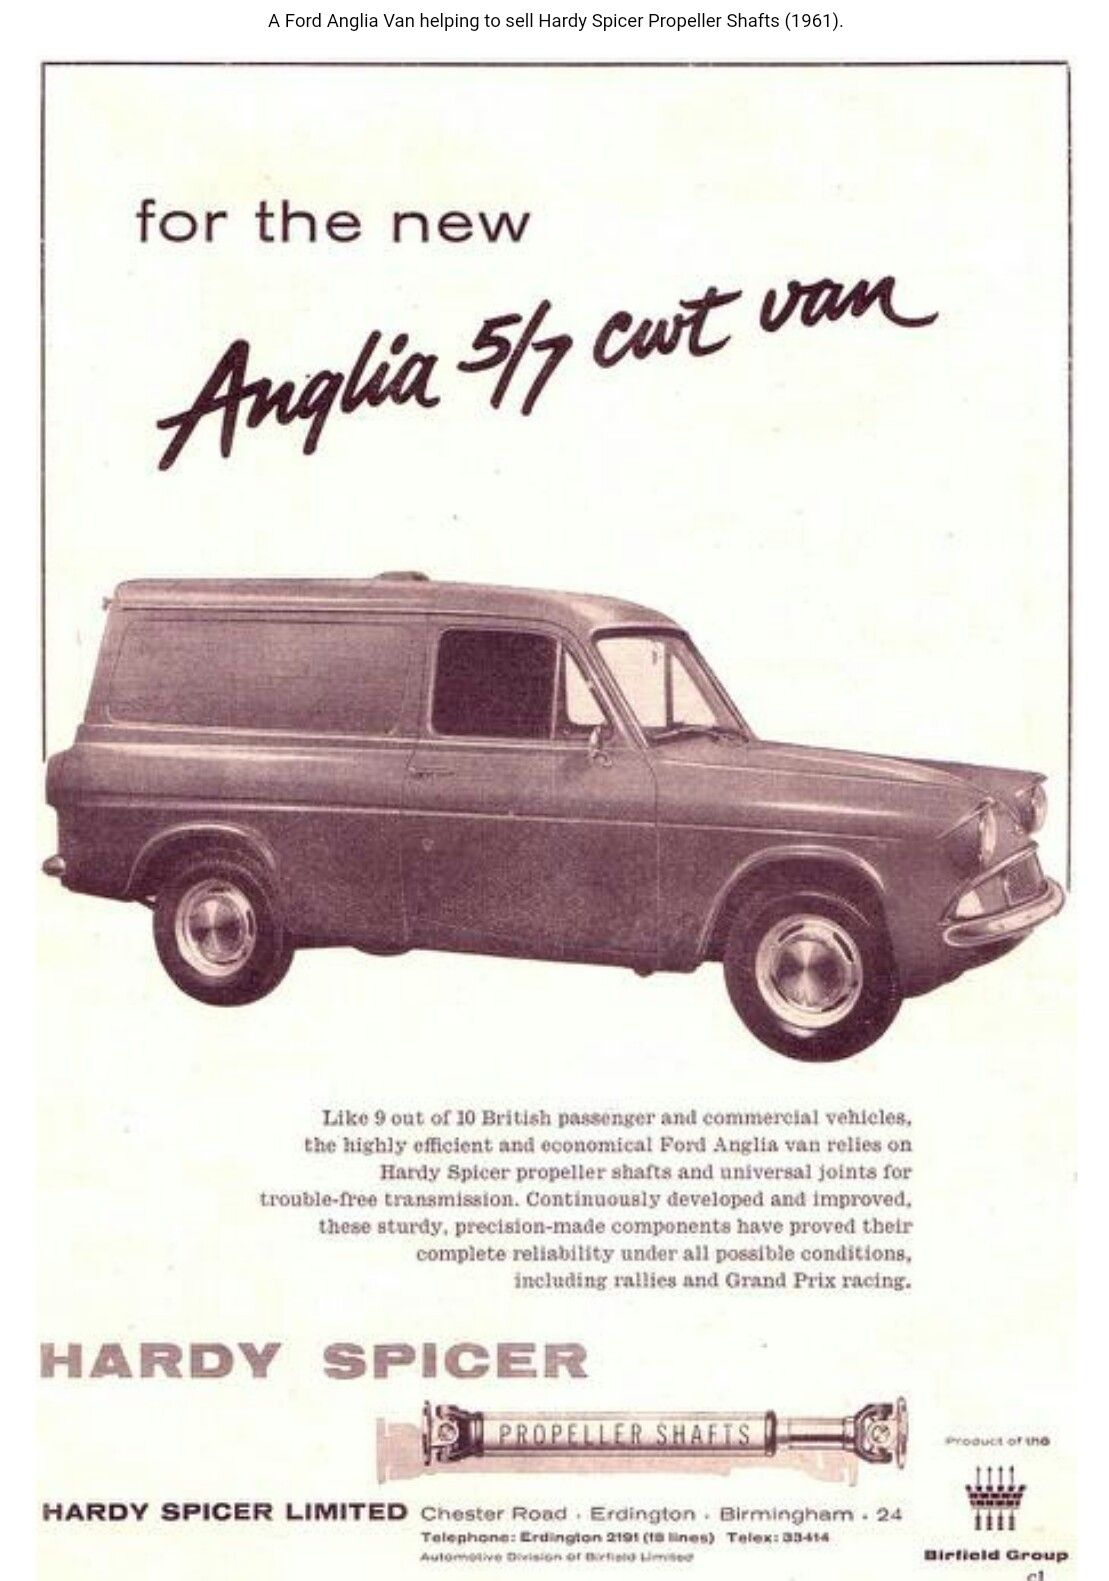 1961 Ford Anglia Thames 307e Ford Anglia Commercial Vehicle Car Advertising